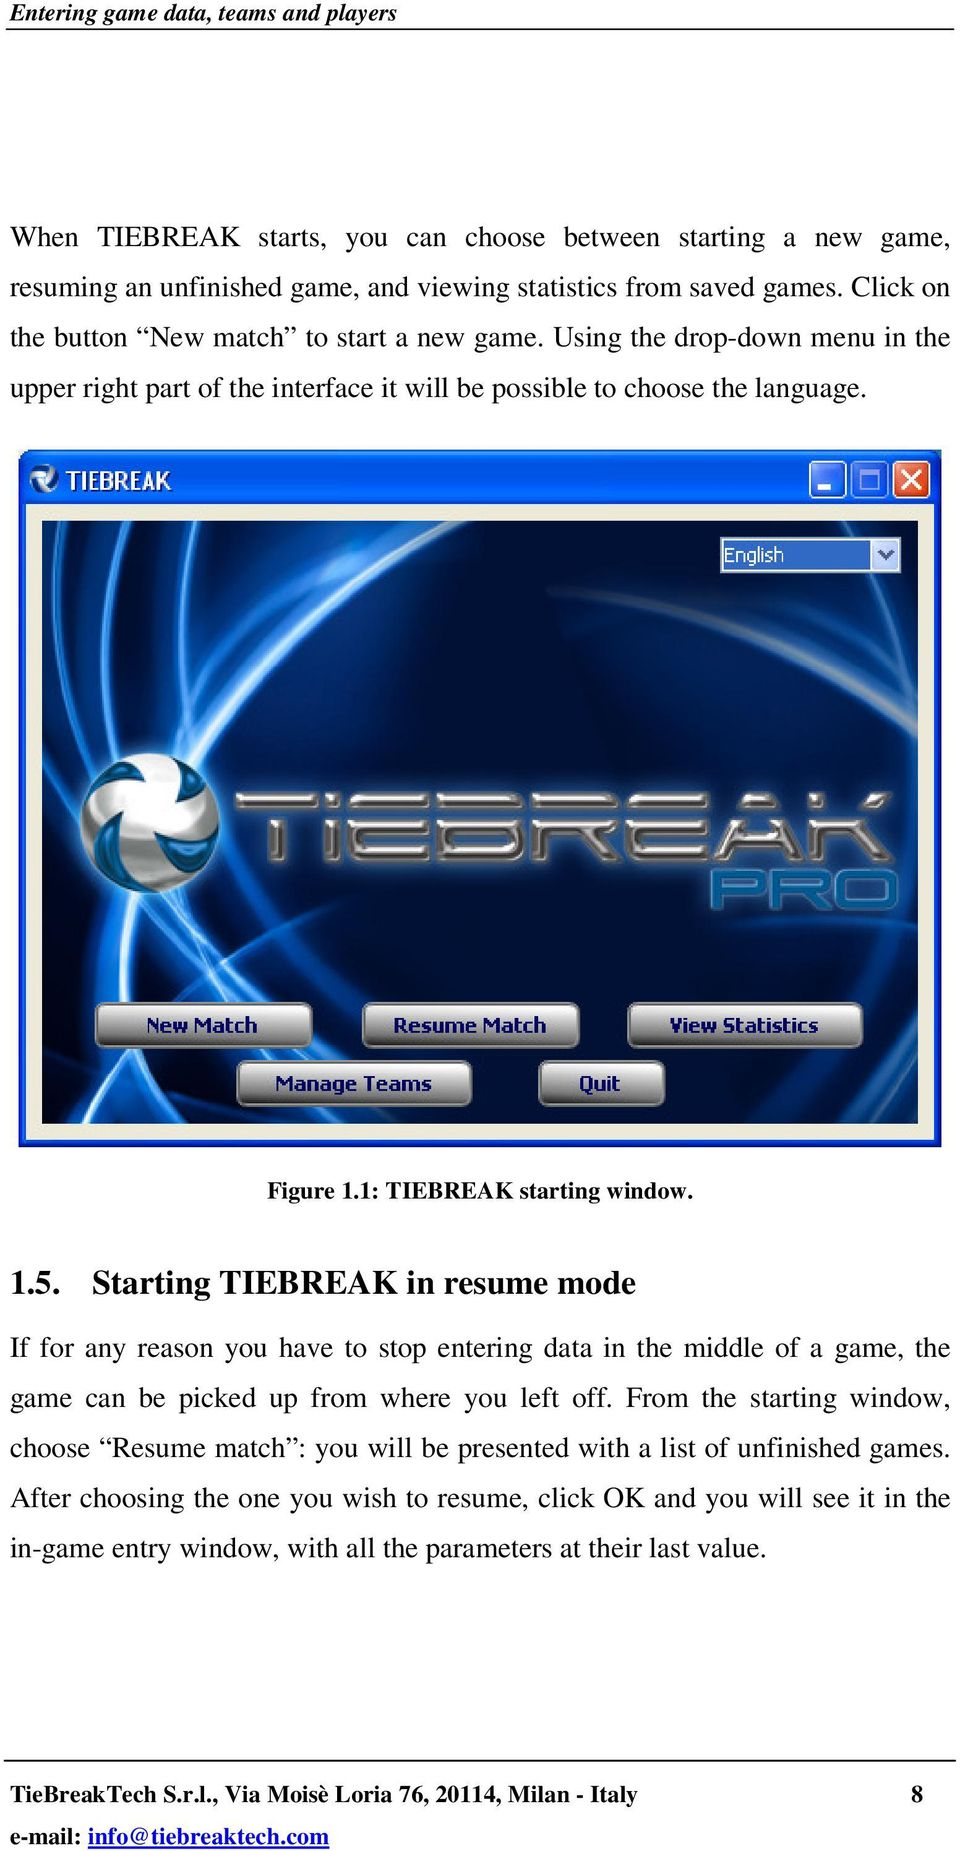 1.5. Starting TIEBREAK in resume mode If for any reason you have to stop entering data in the middle of a game, the game can be picked up from where you left off.